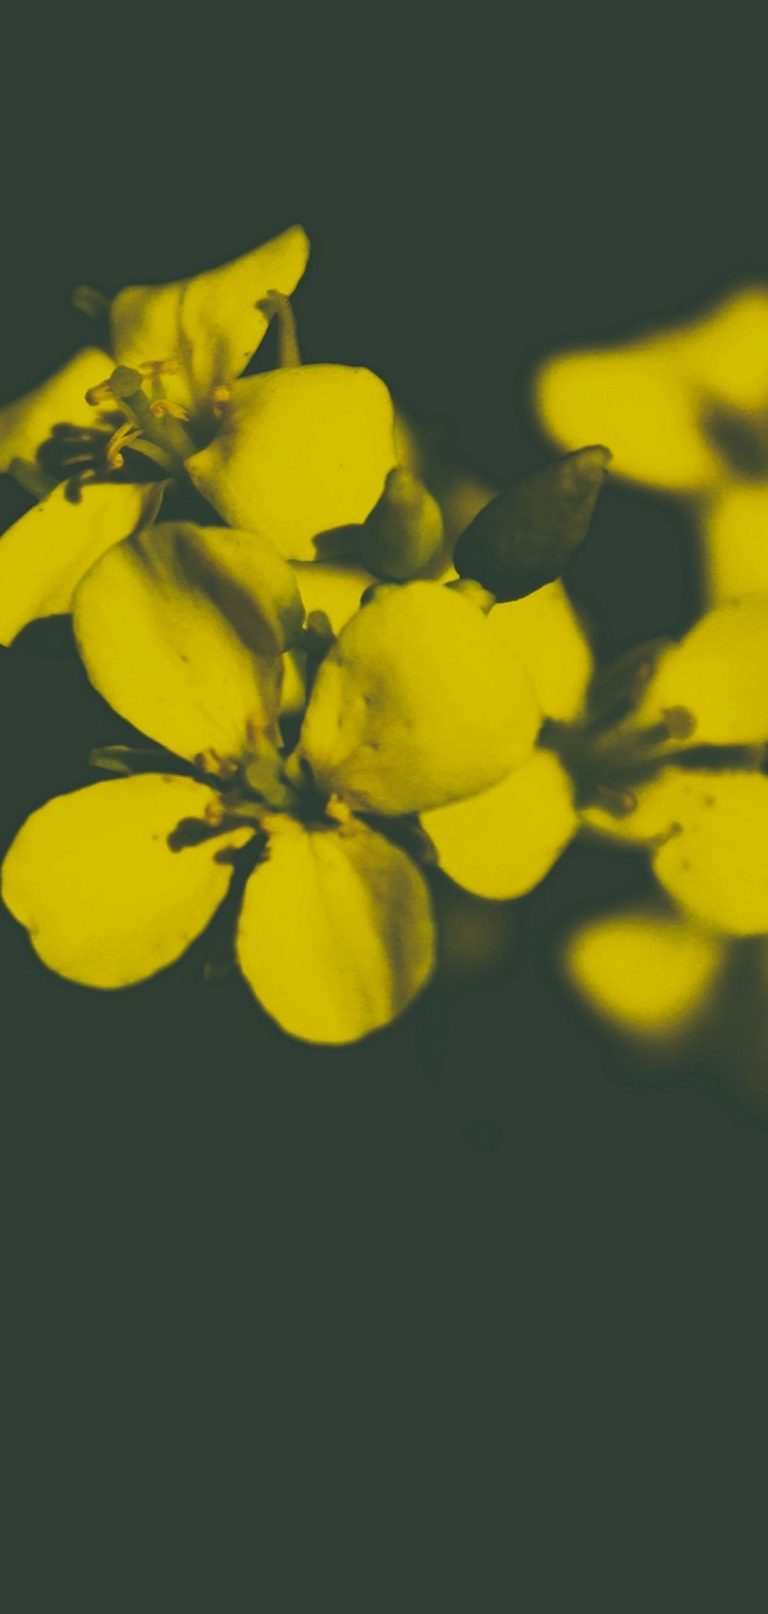 Flower Yellow Petals 1080x2270 768x1614